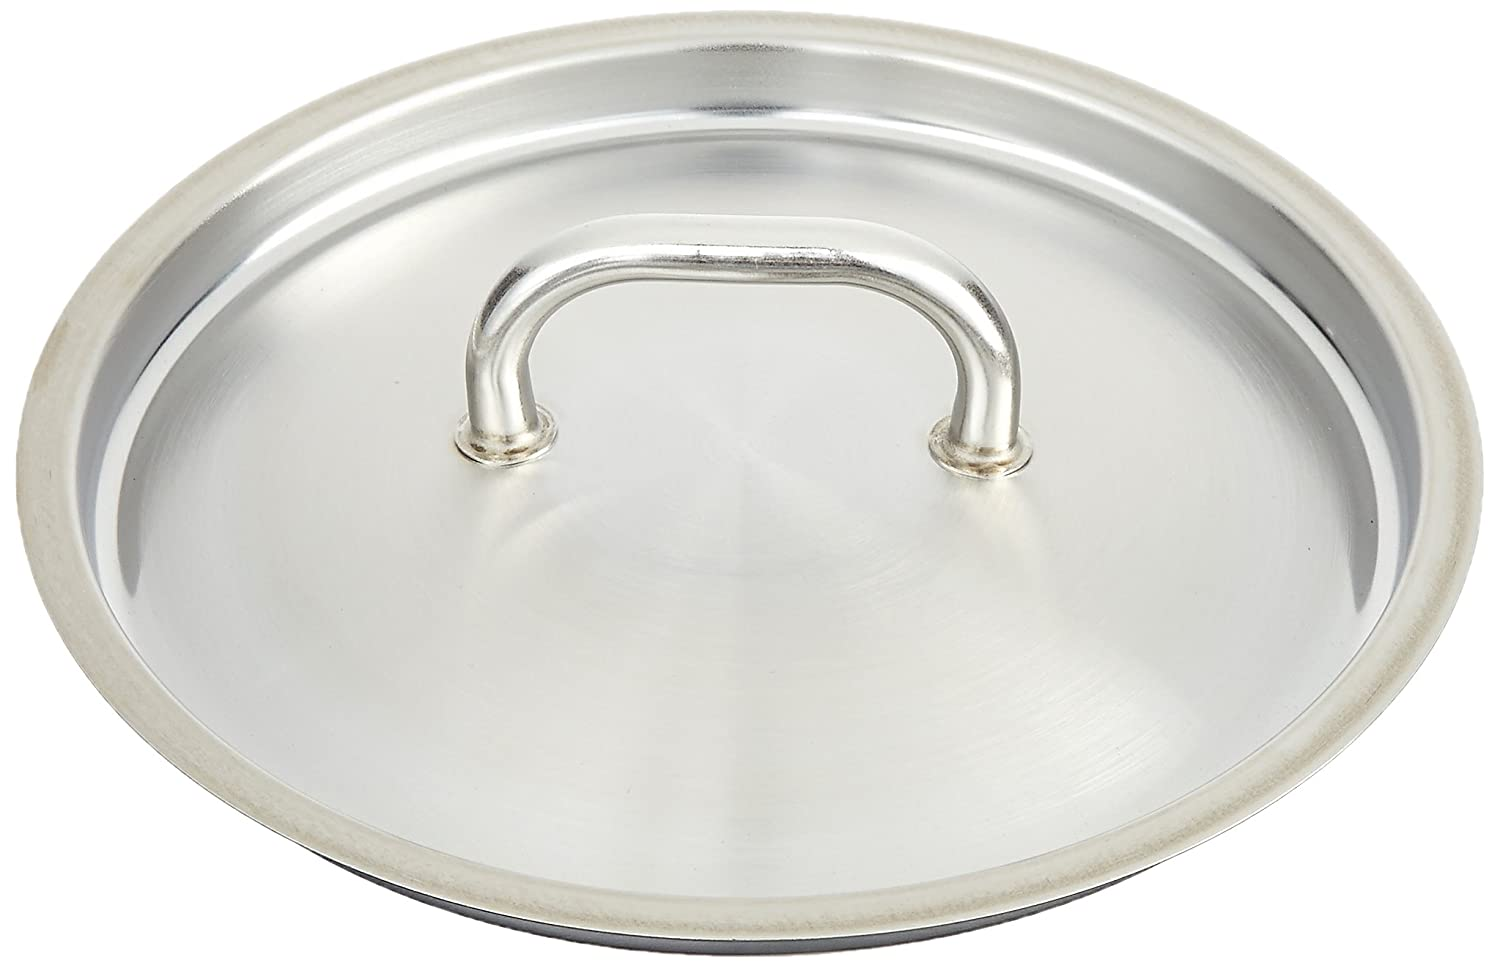 Bourgeat K833 Stainless Steel Lid 692020